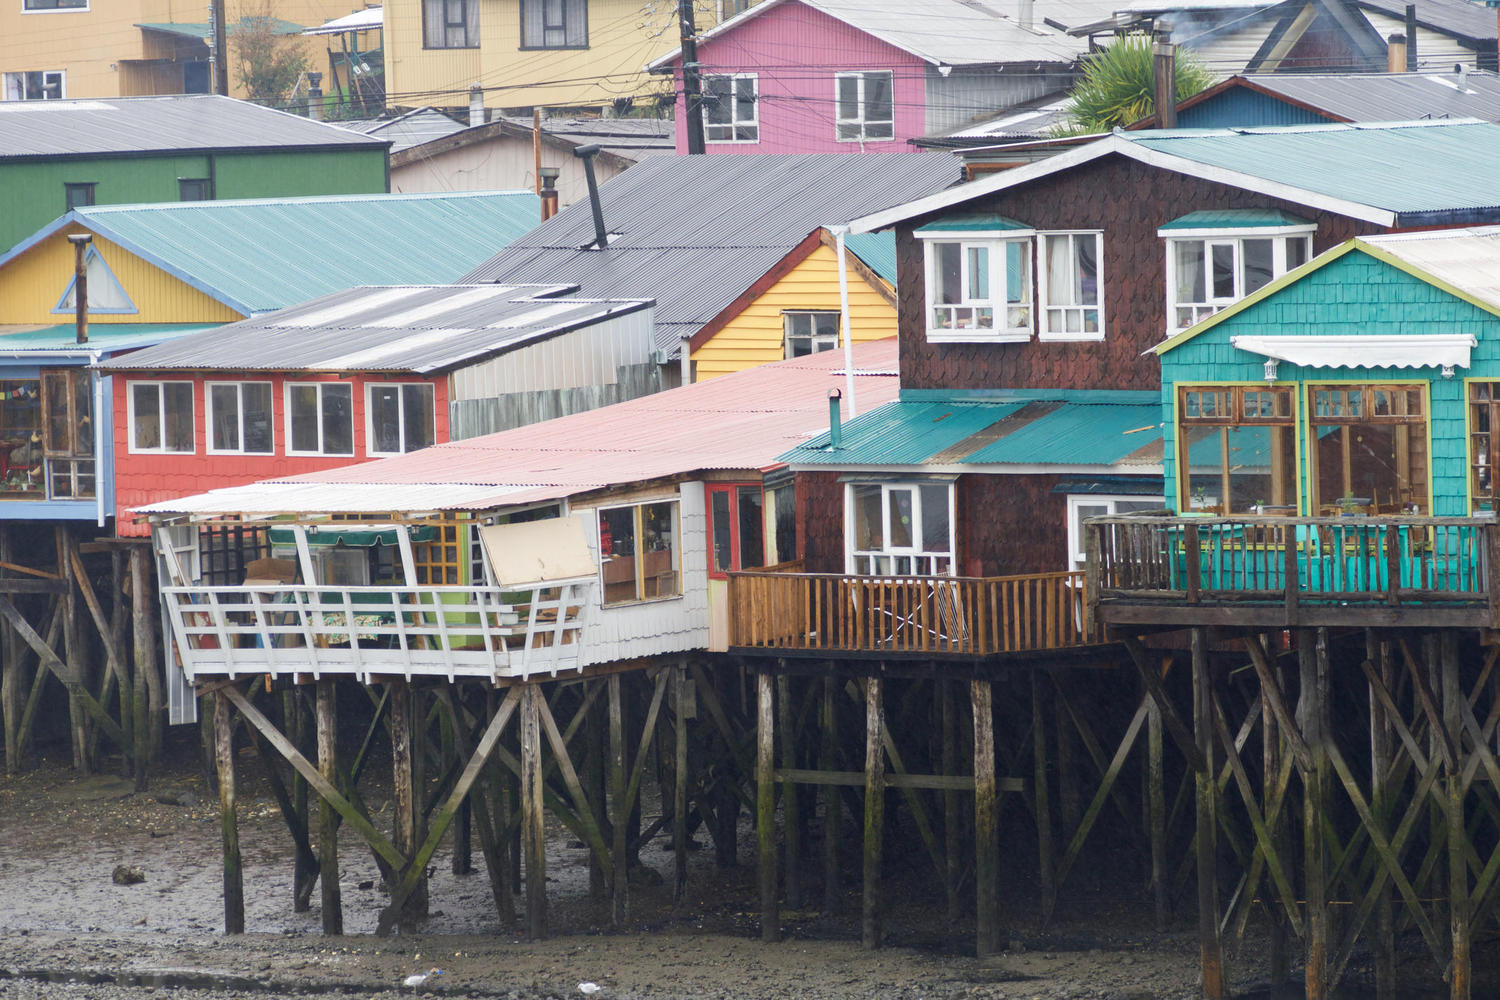 Palofito houses on the estuary in Castro, Chiloé